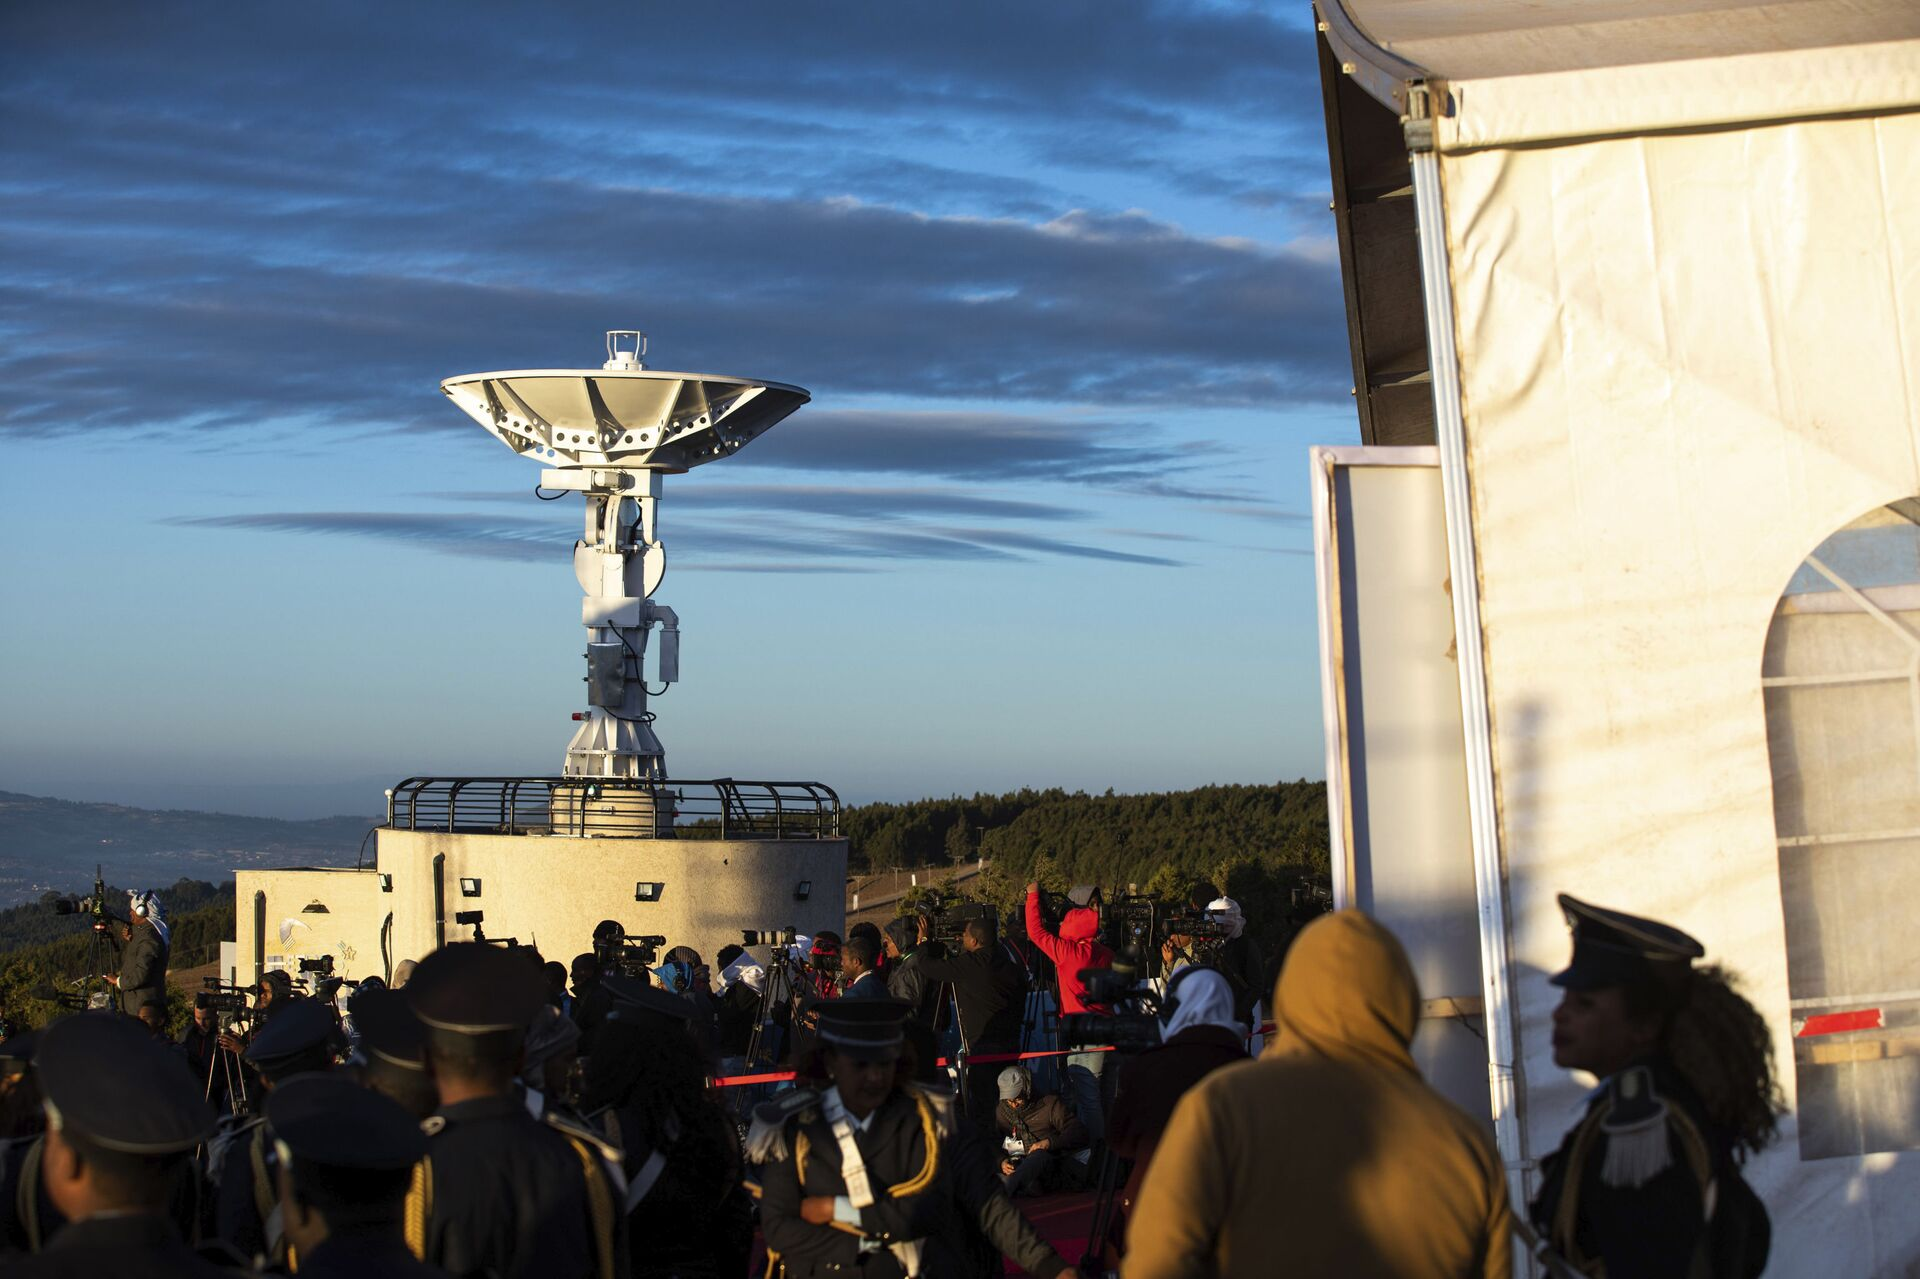 People attend the launch of Ethiopia's first micro-satellite (ETRSS-1) at the Entoto Observatory on the outskirts of the capital Addis Ababa, Friday Dec. 20, 2019 - Sputnik International, 1920, 23.09.2021